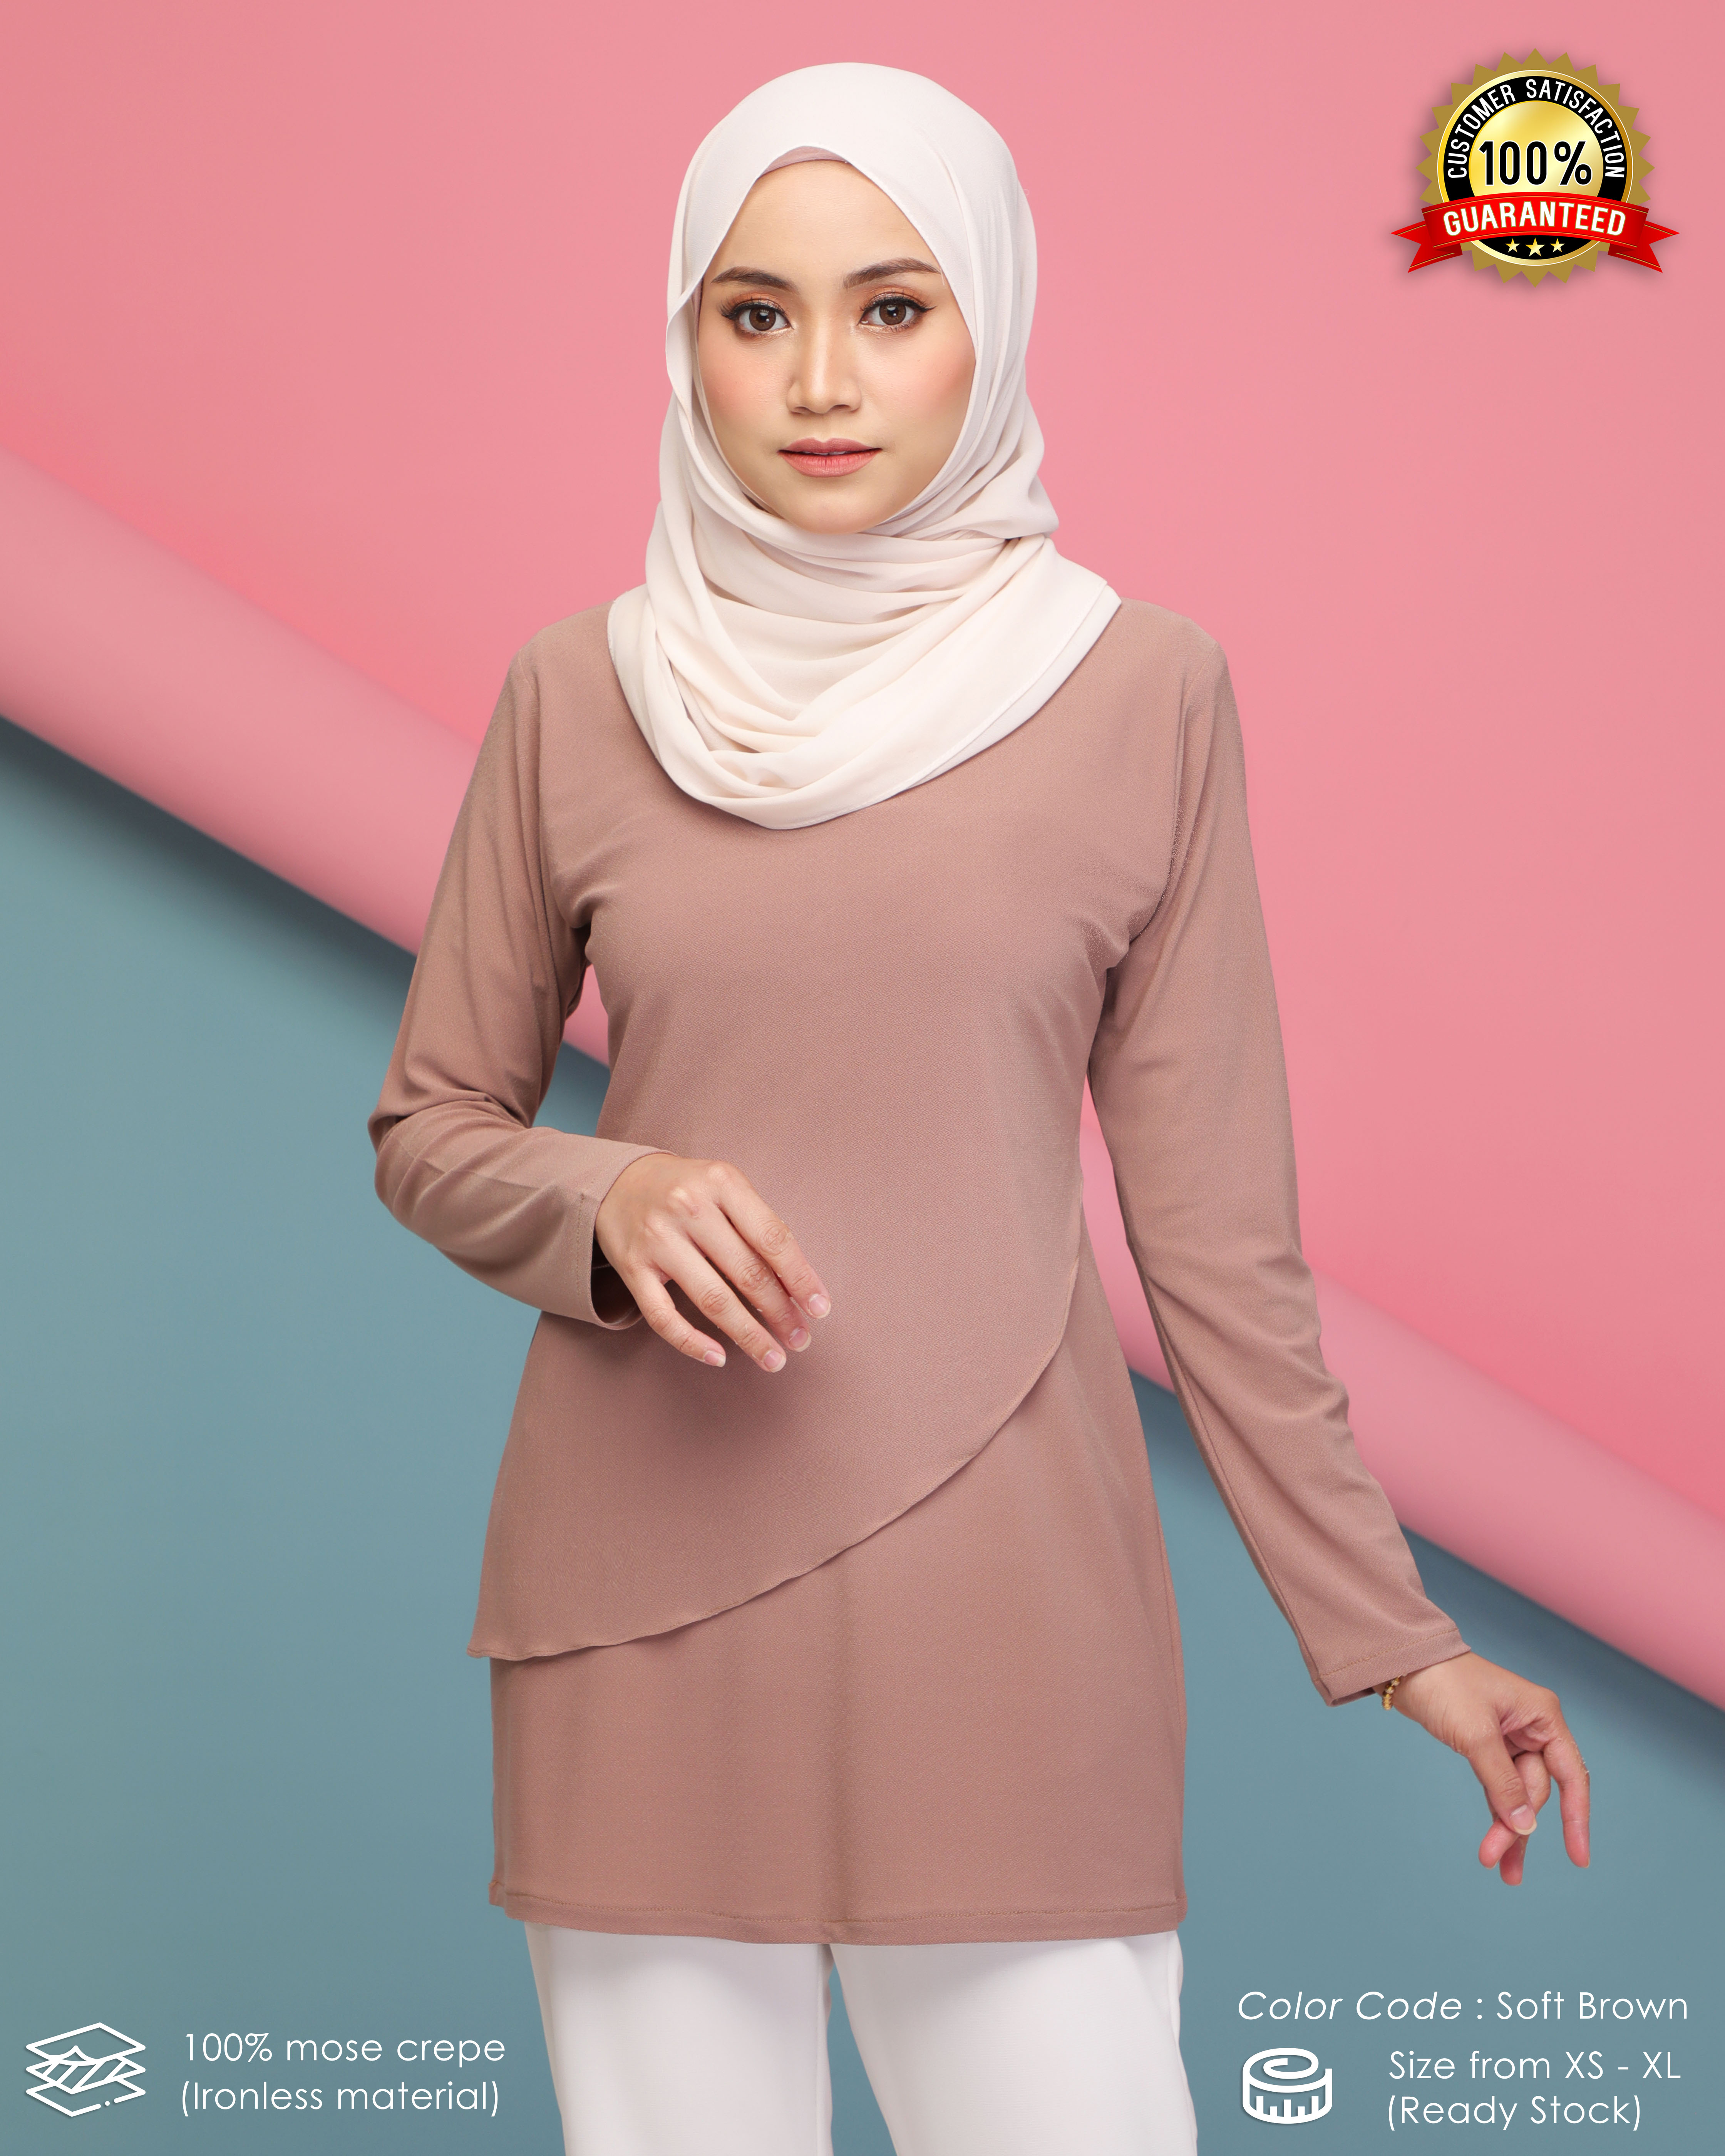 LILY - SOFT BROWN